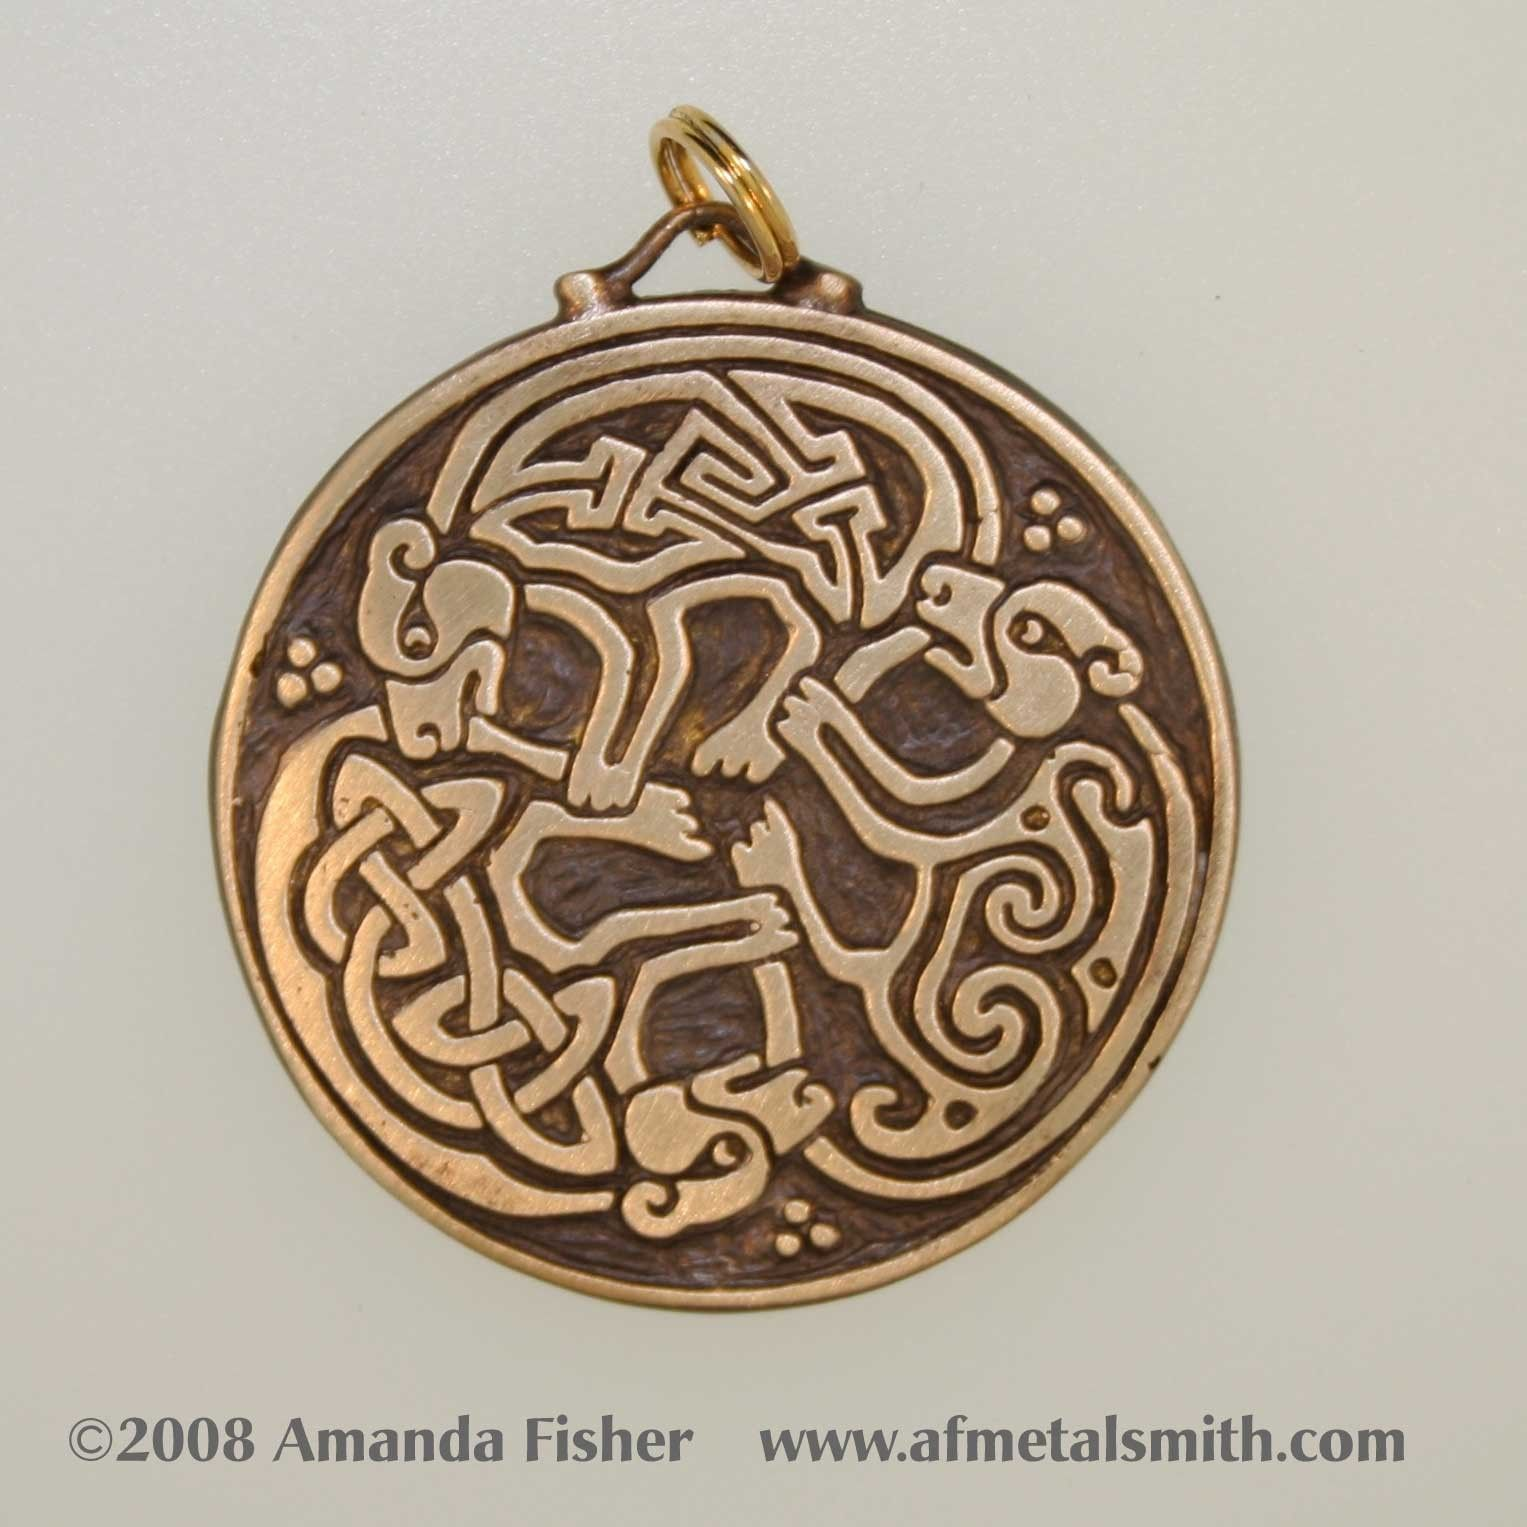 free shipping disk necklace inch watches orders jewelry product sterling overstock on disc triskele pendant silver celtic over chain sun box cgc